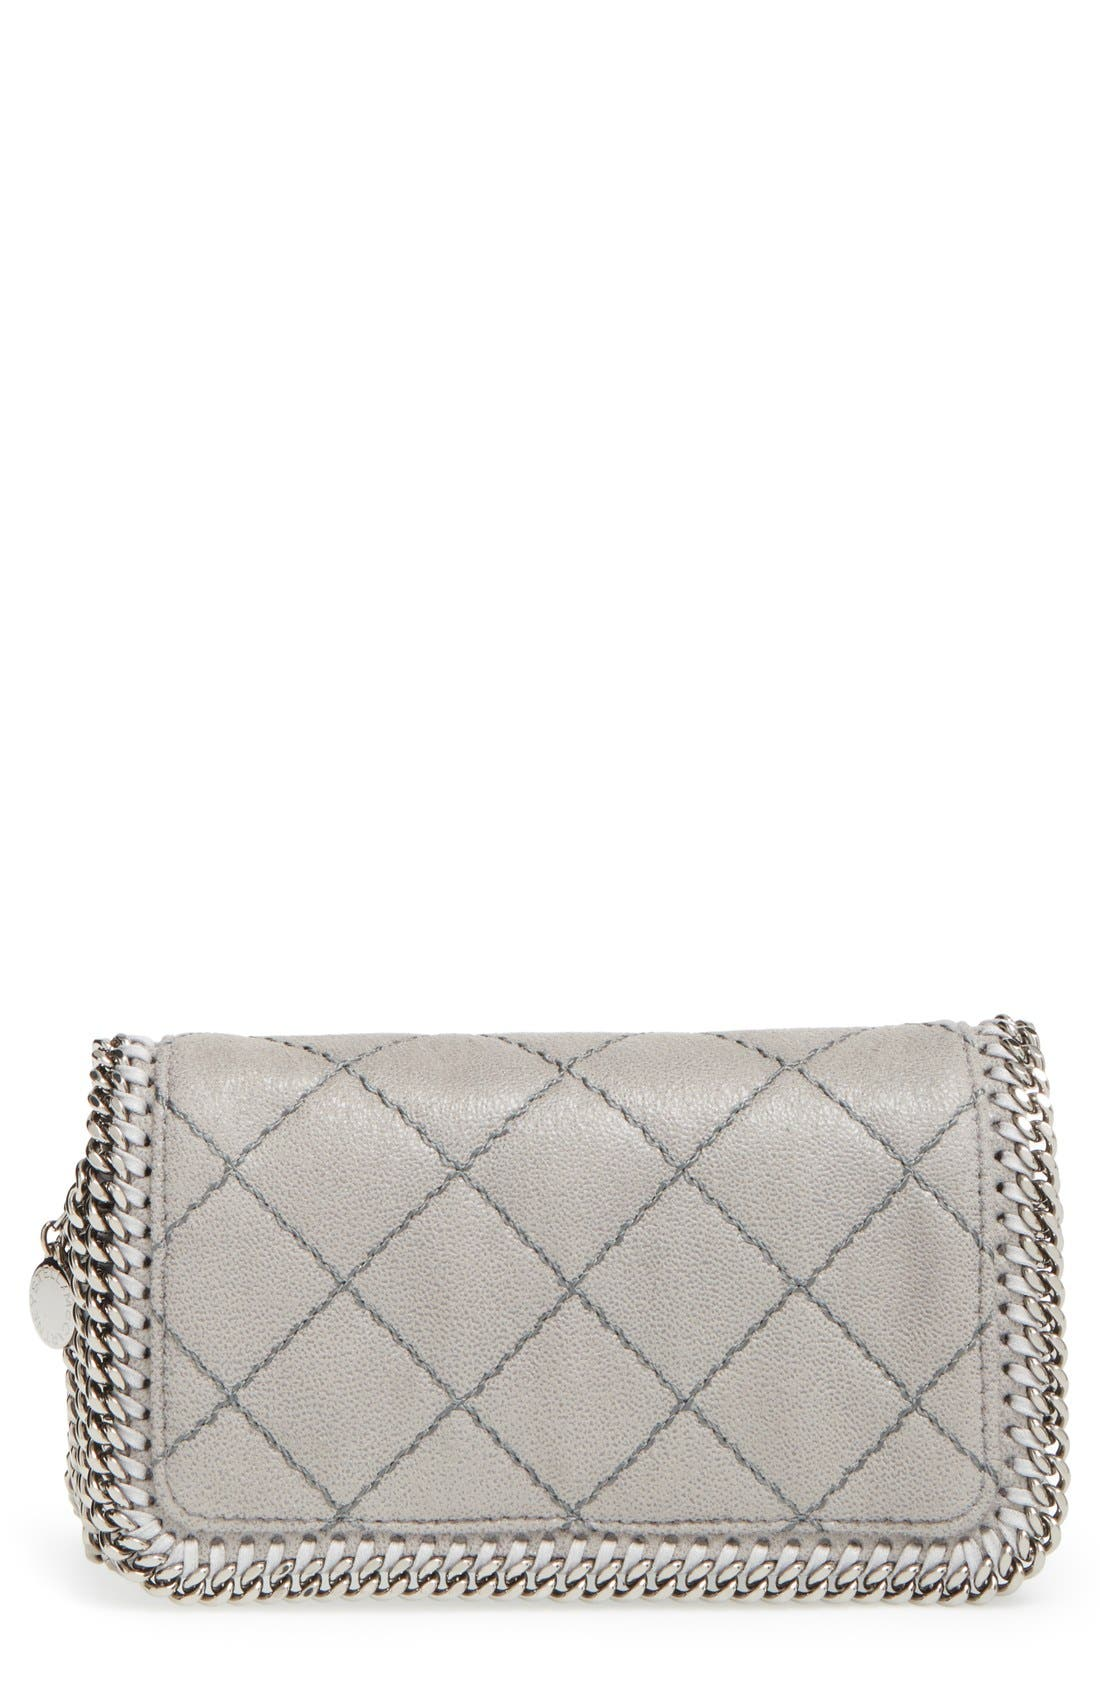 'Falabella' Quilted Faux Leather Crossbody Bag,                         Main,                         color,